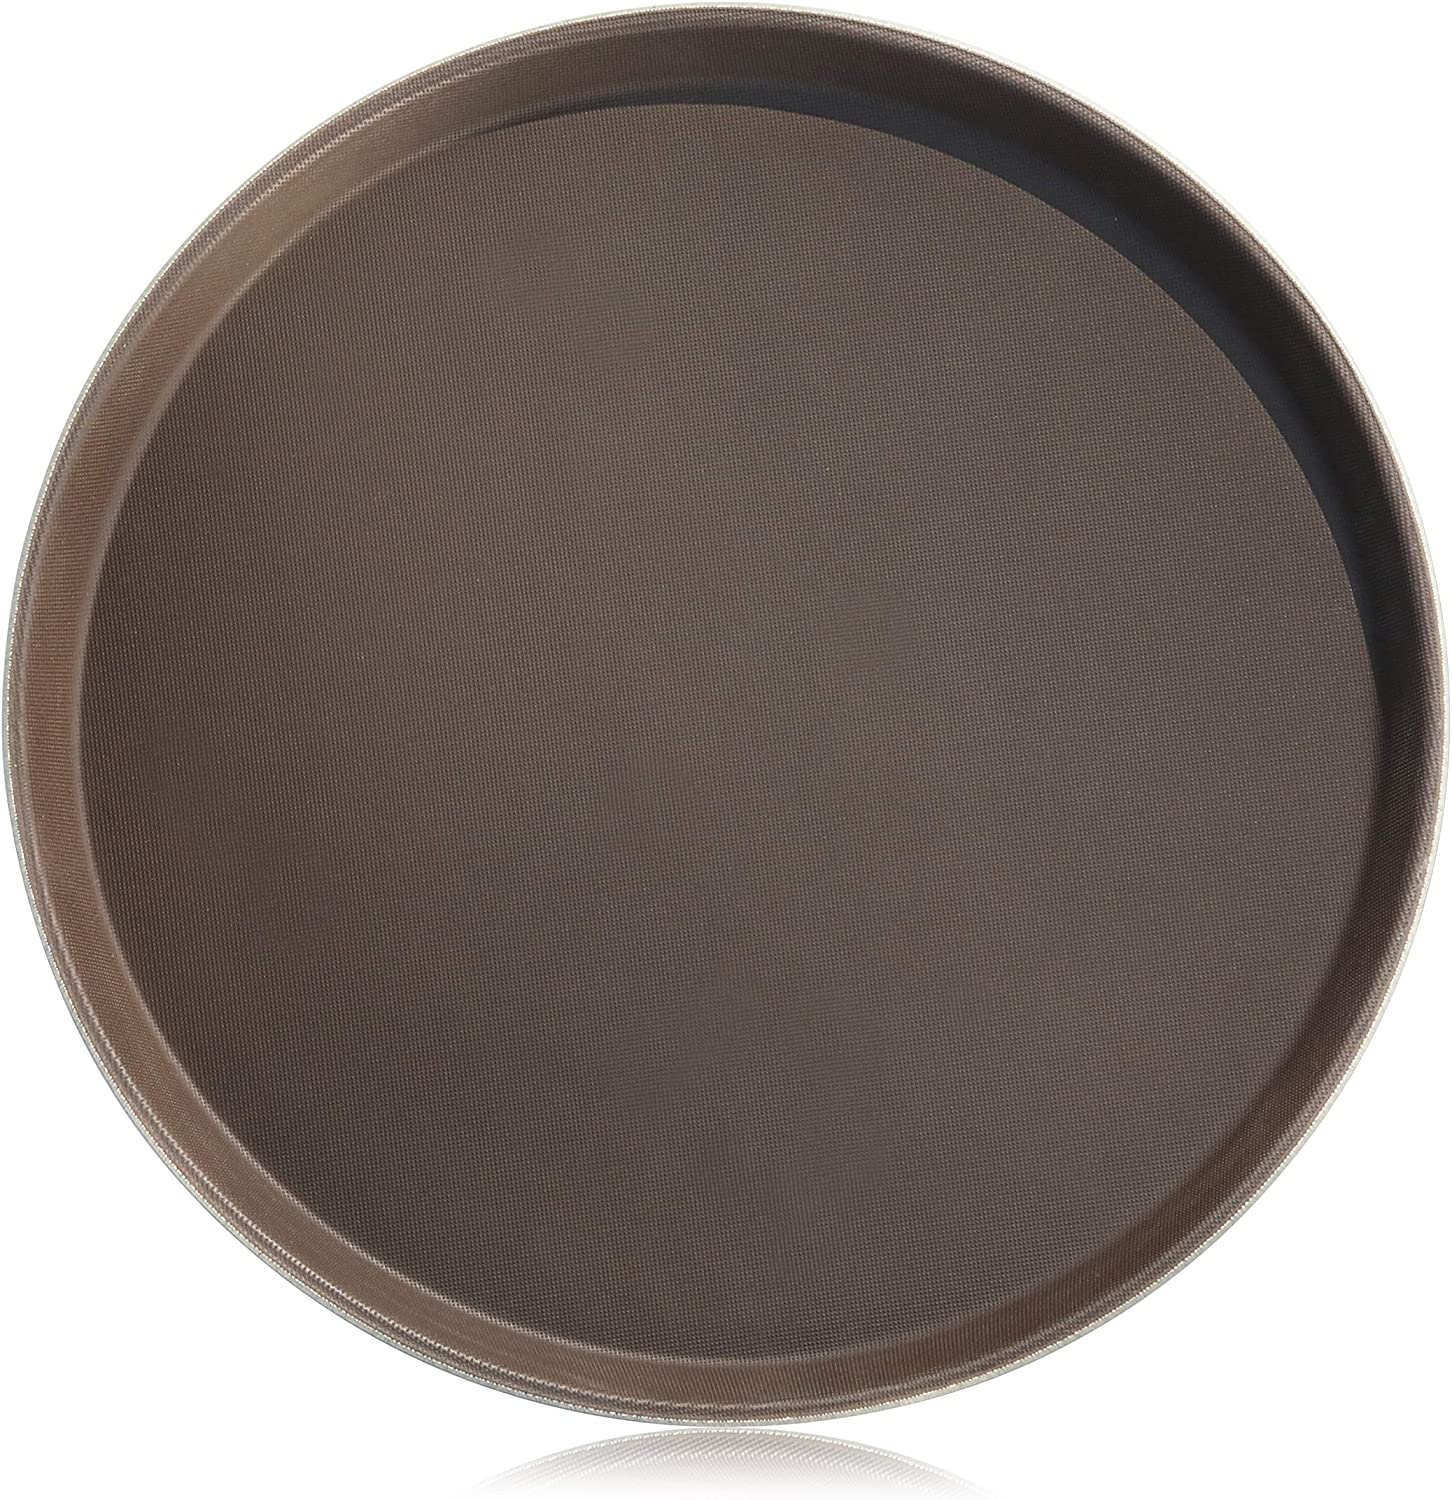 New Star Foodservice 25064 Restaurant Grade Non-Slip Tray, Plastic, Rubber Lined, Round, 14